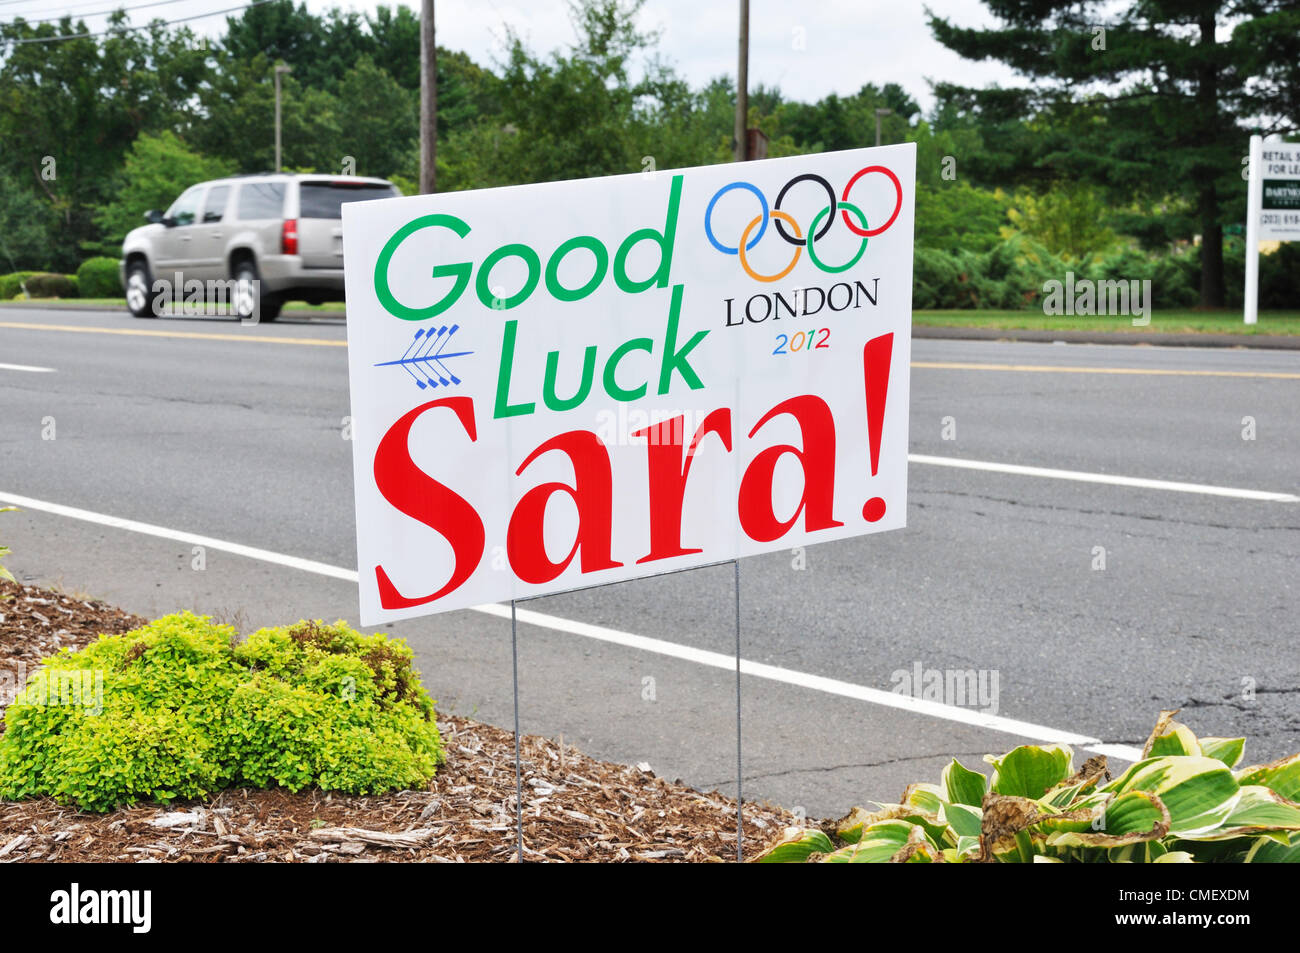 Roadside support poster for Connecticut Rower Sara Hendershot who qualified for Final in Summer Olympics. Avon, - Stock Image